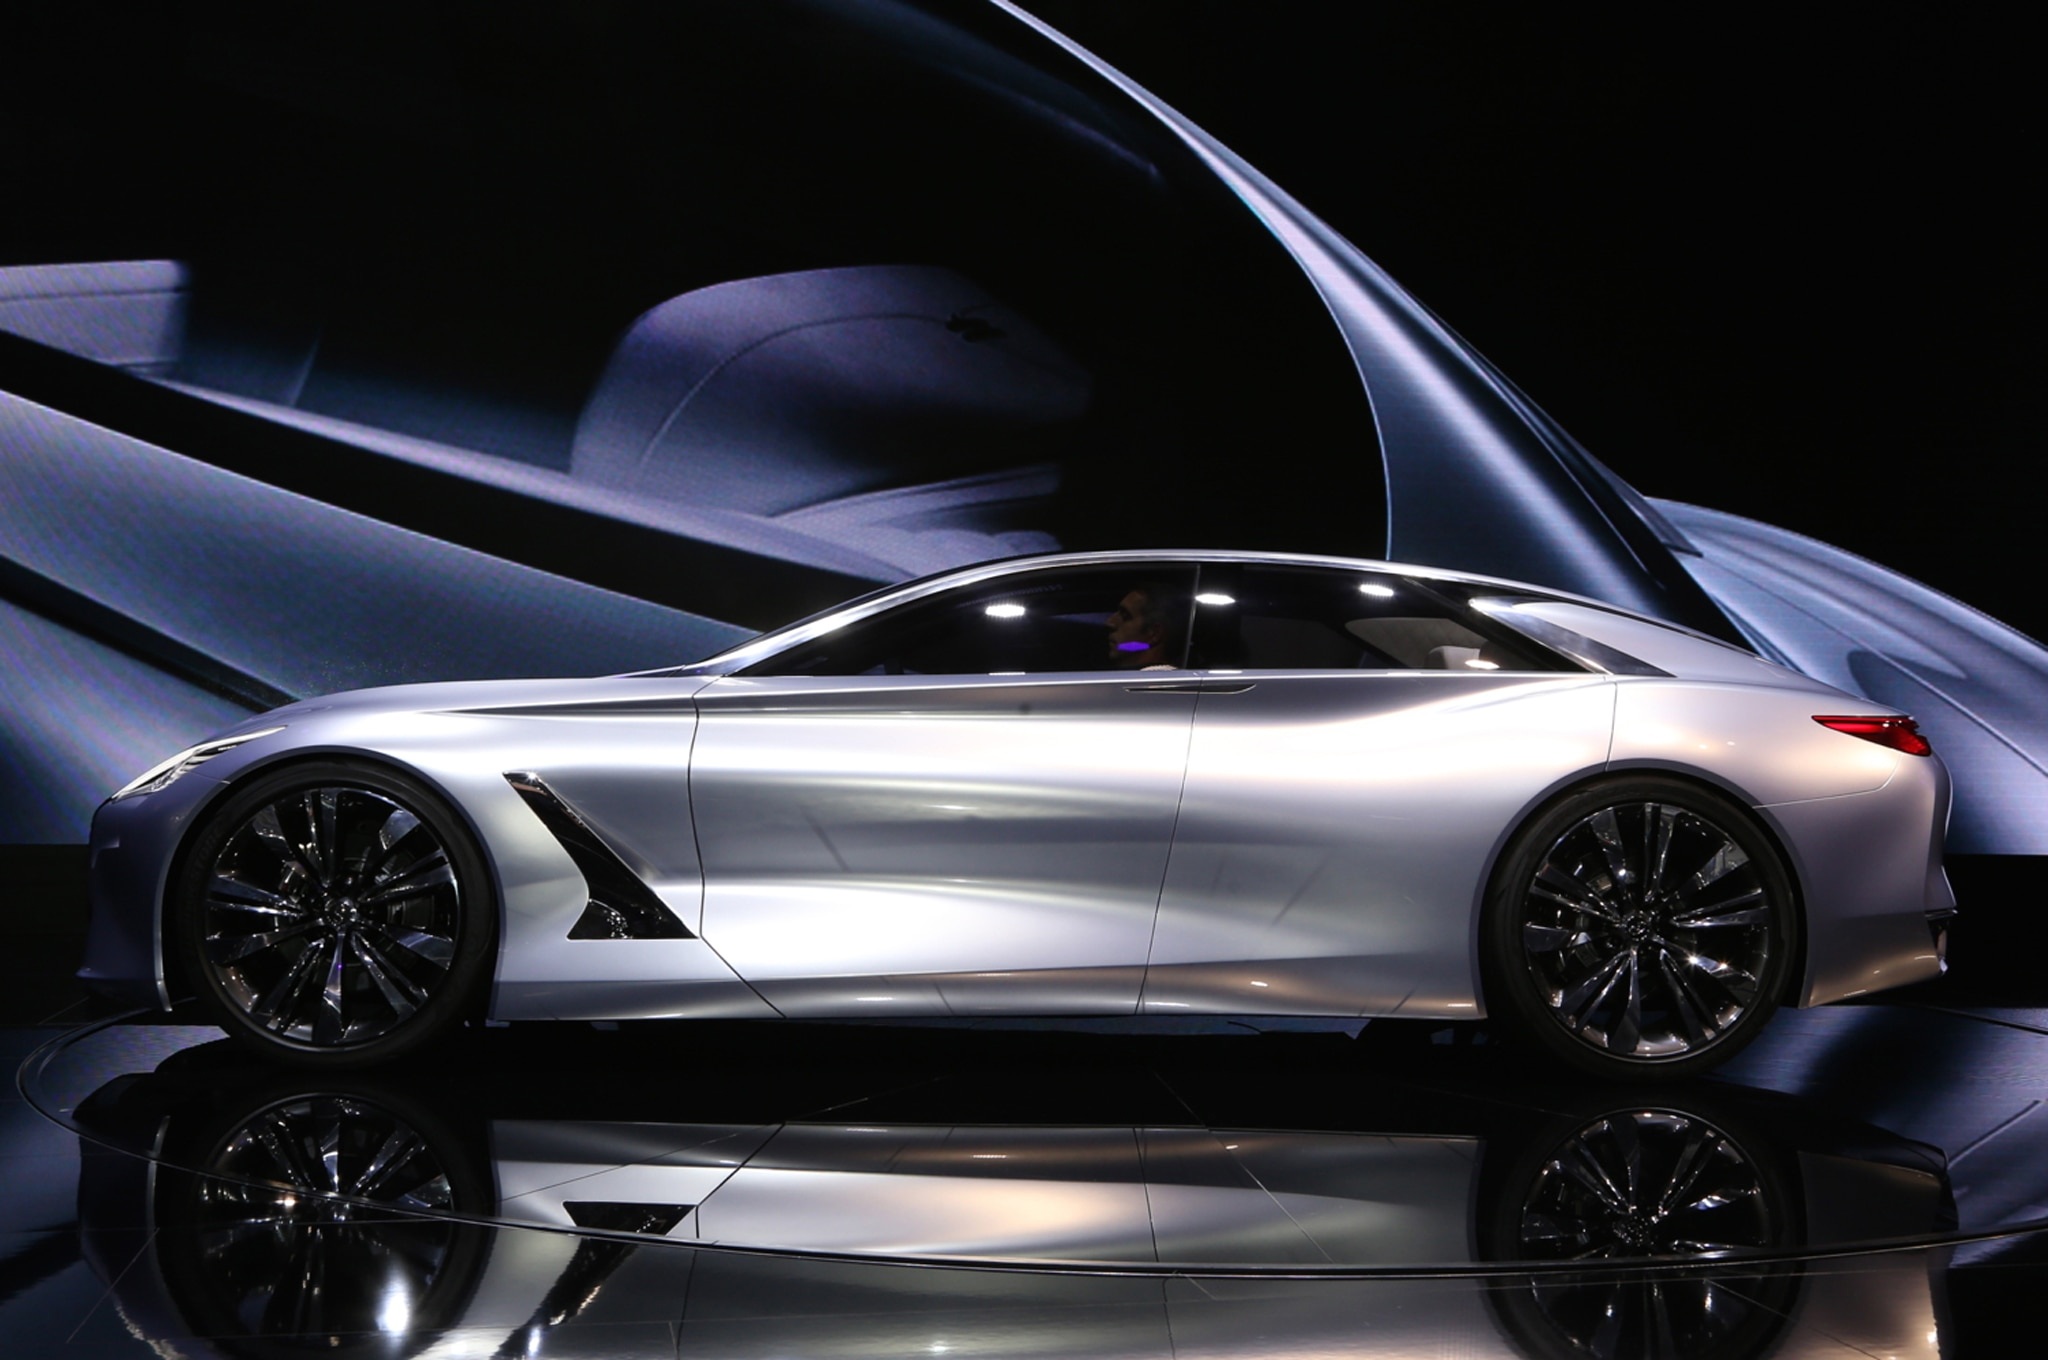 infiniti q80 inspiration concept previews upcoming flagship model. Black Bedroom Furniture Sets. Home Design Ideas